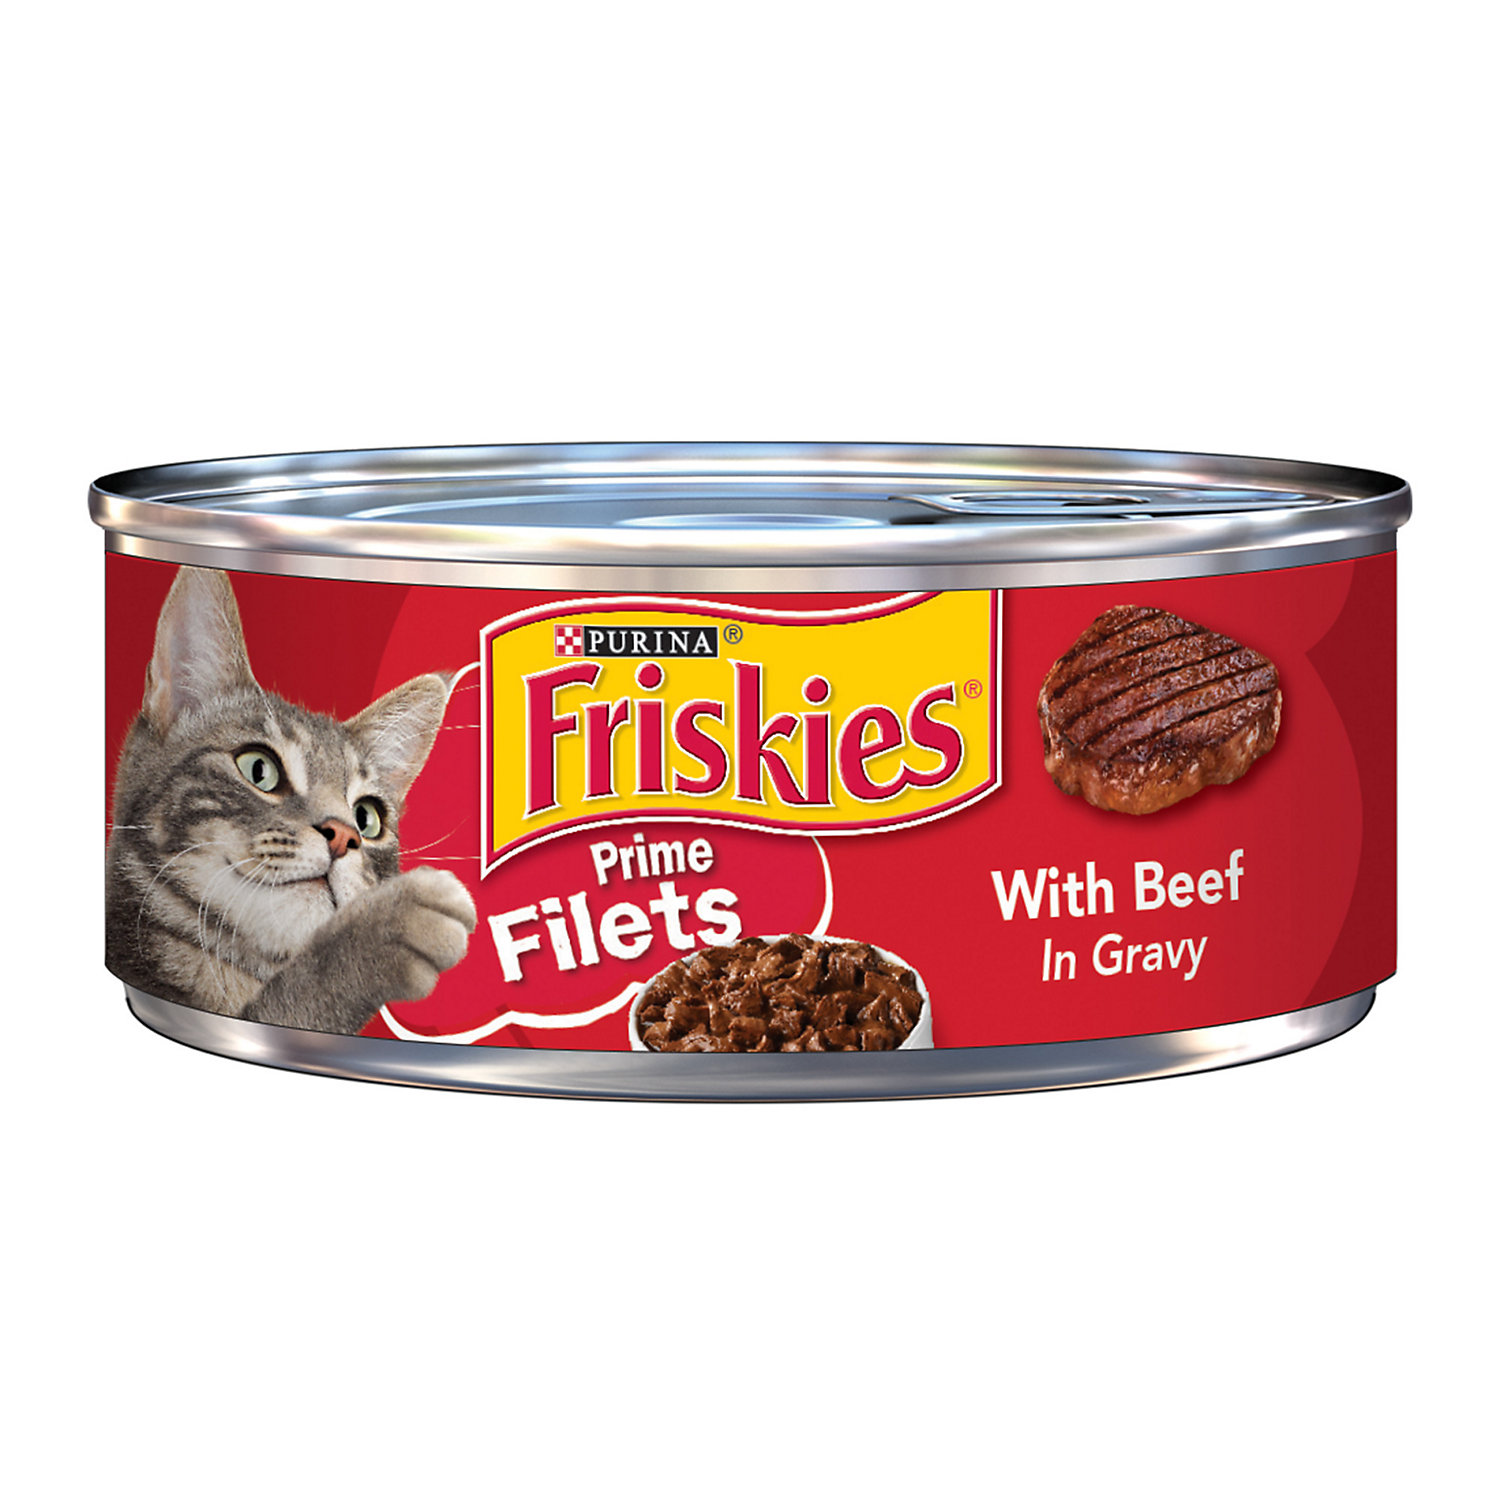 Friskies food upc barcode for Barcode food